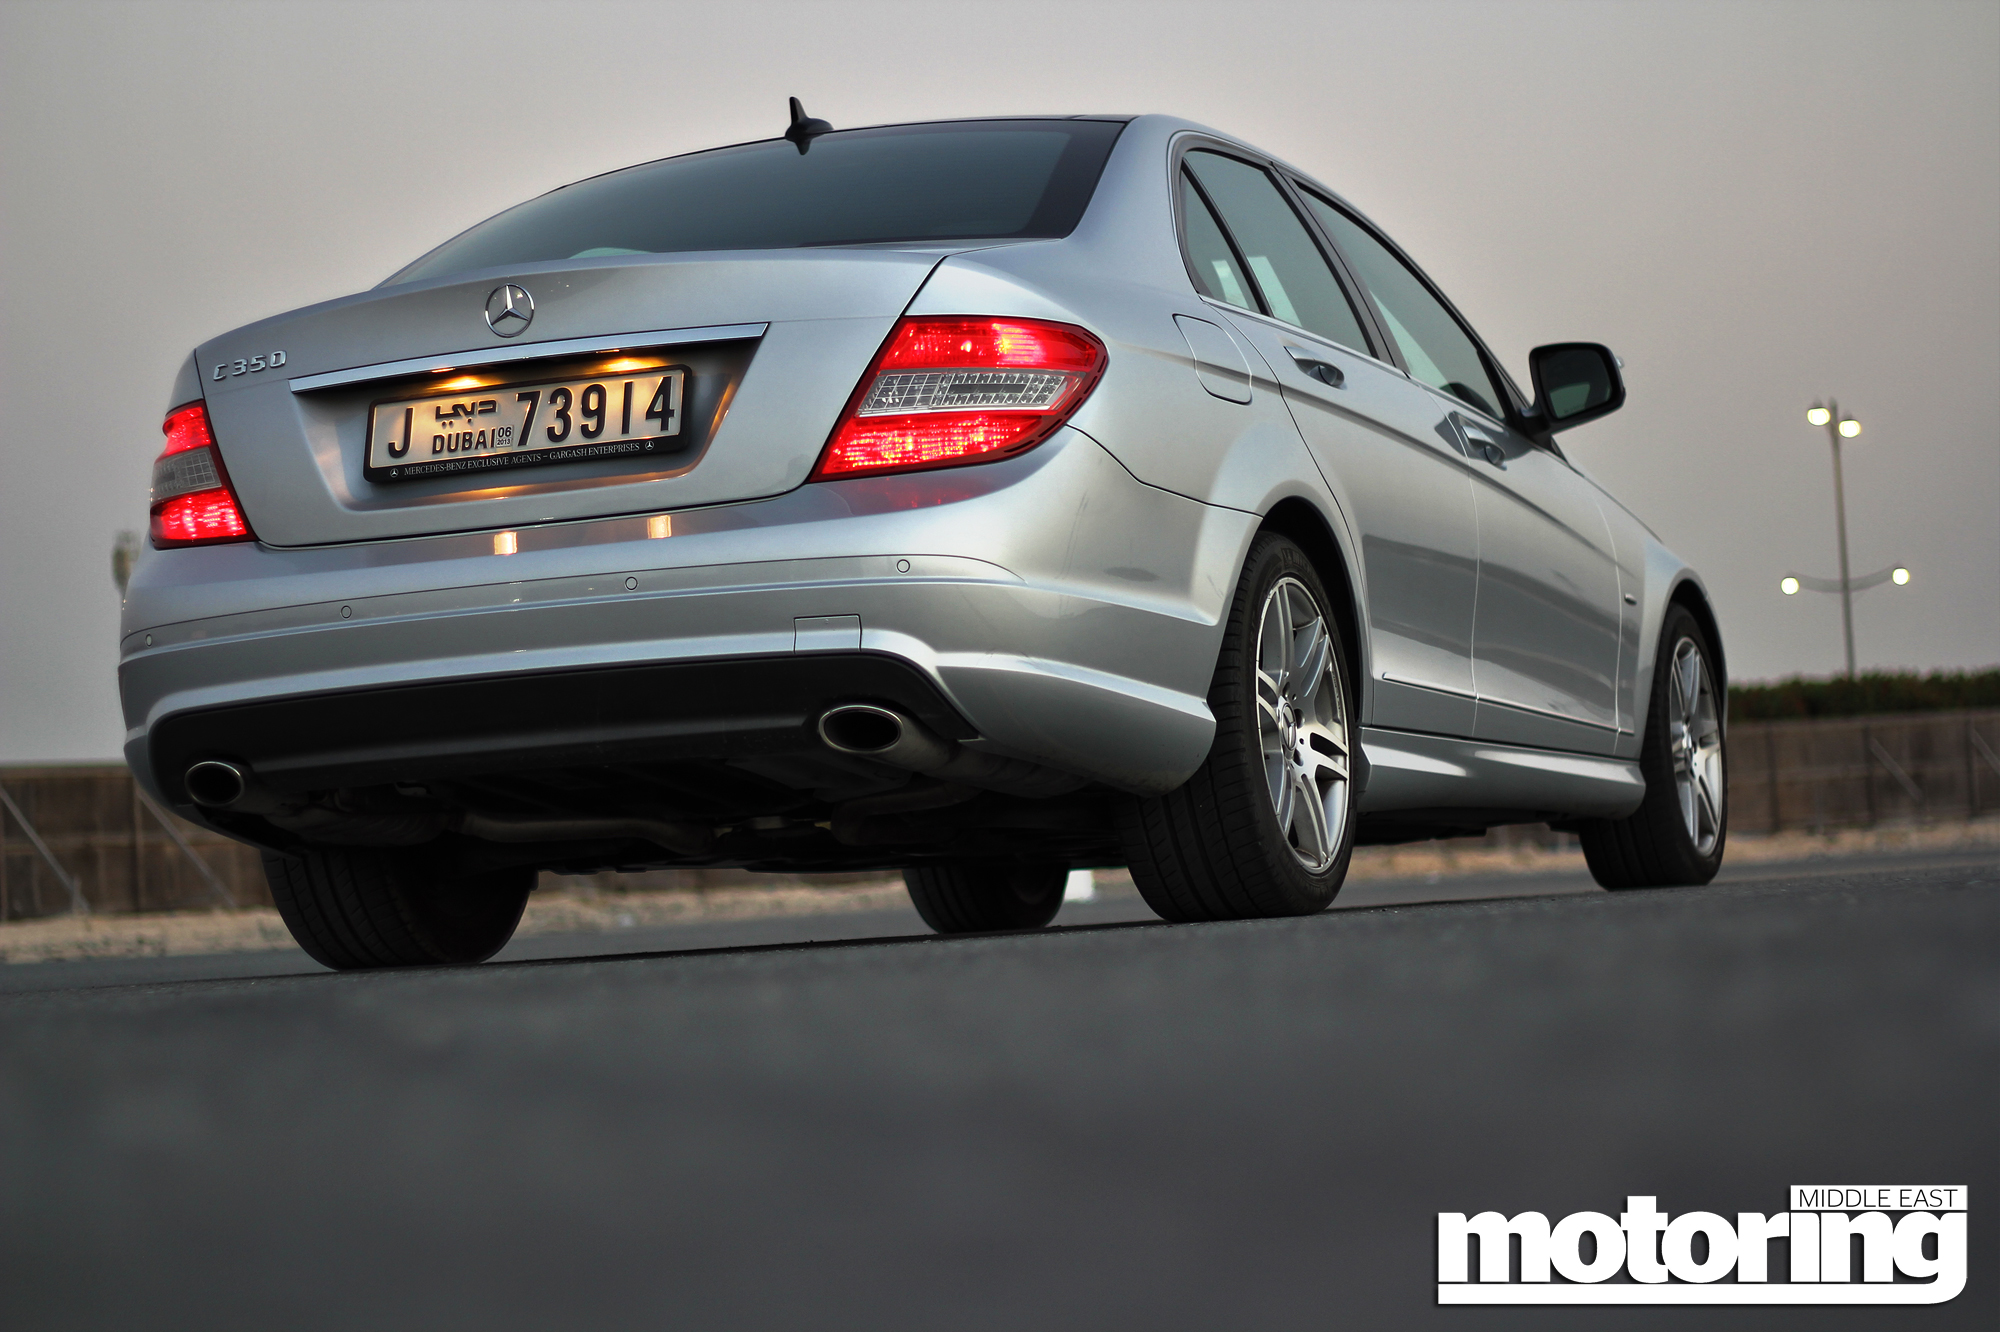 date benz release vehicles three front quarters mercedes c class price review in motion